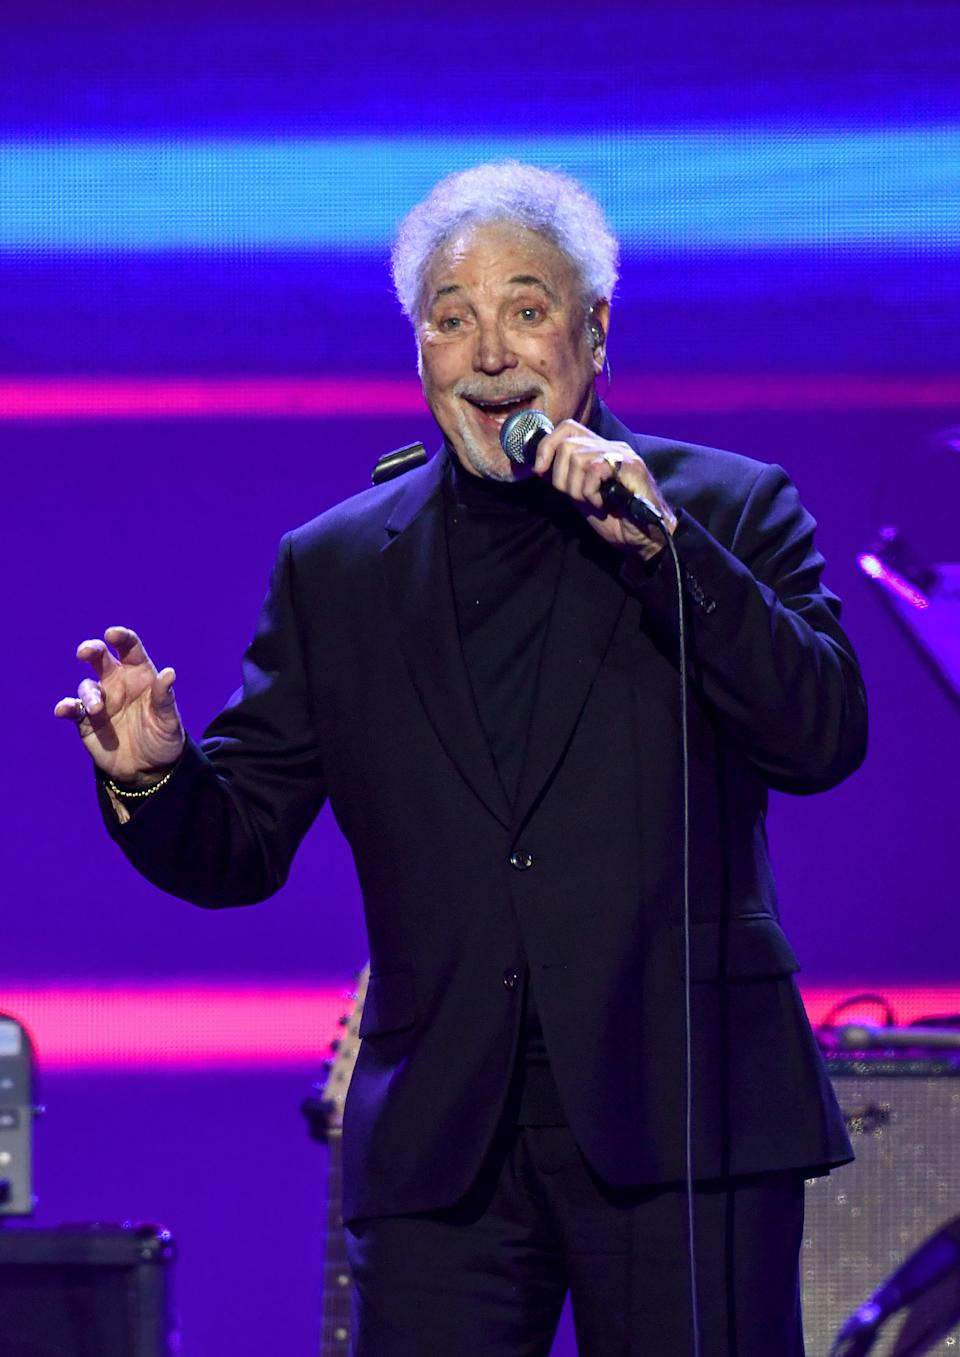 Sir Tom Jones' 'Surrounded By Time' is his fourth number one album. (Photo by Gareth Cattermole/Gareth Cattermole/Getty Images)